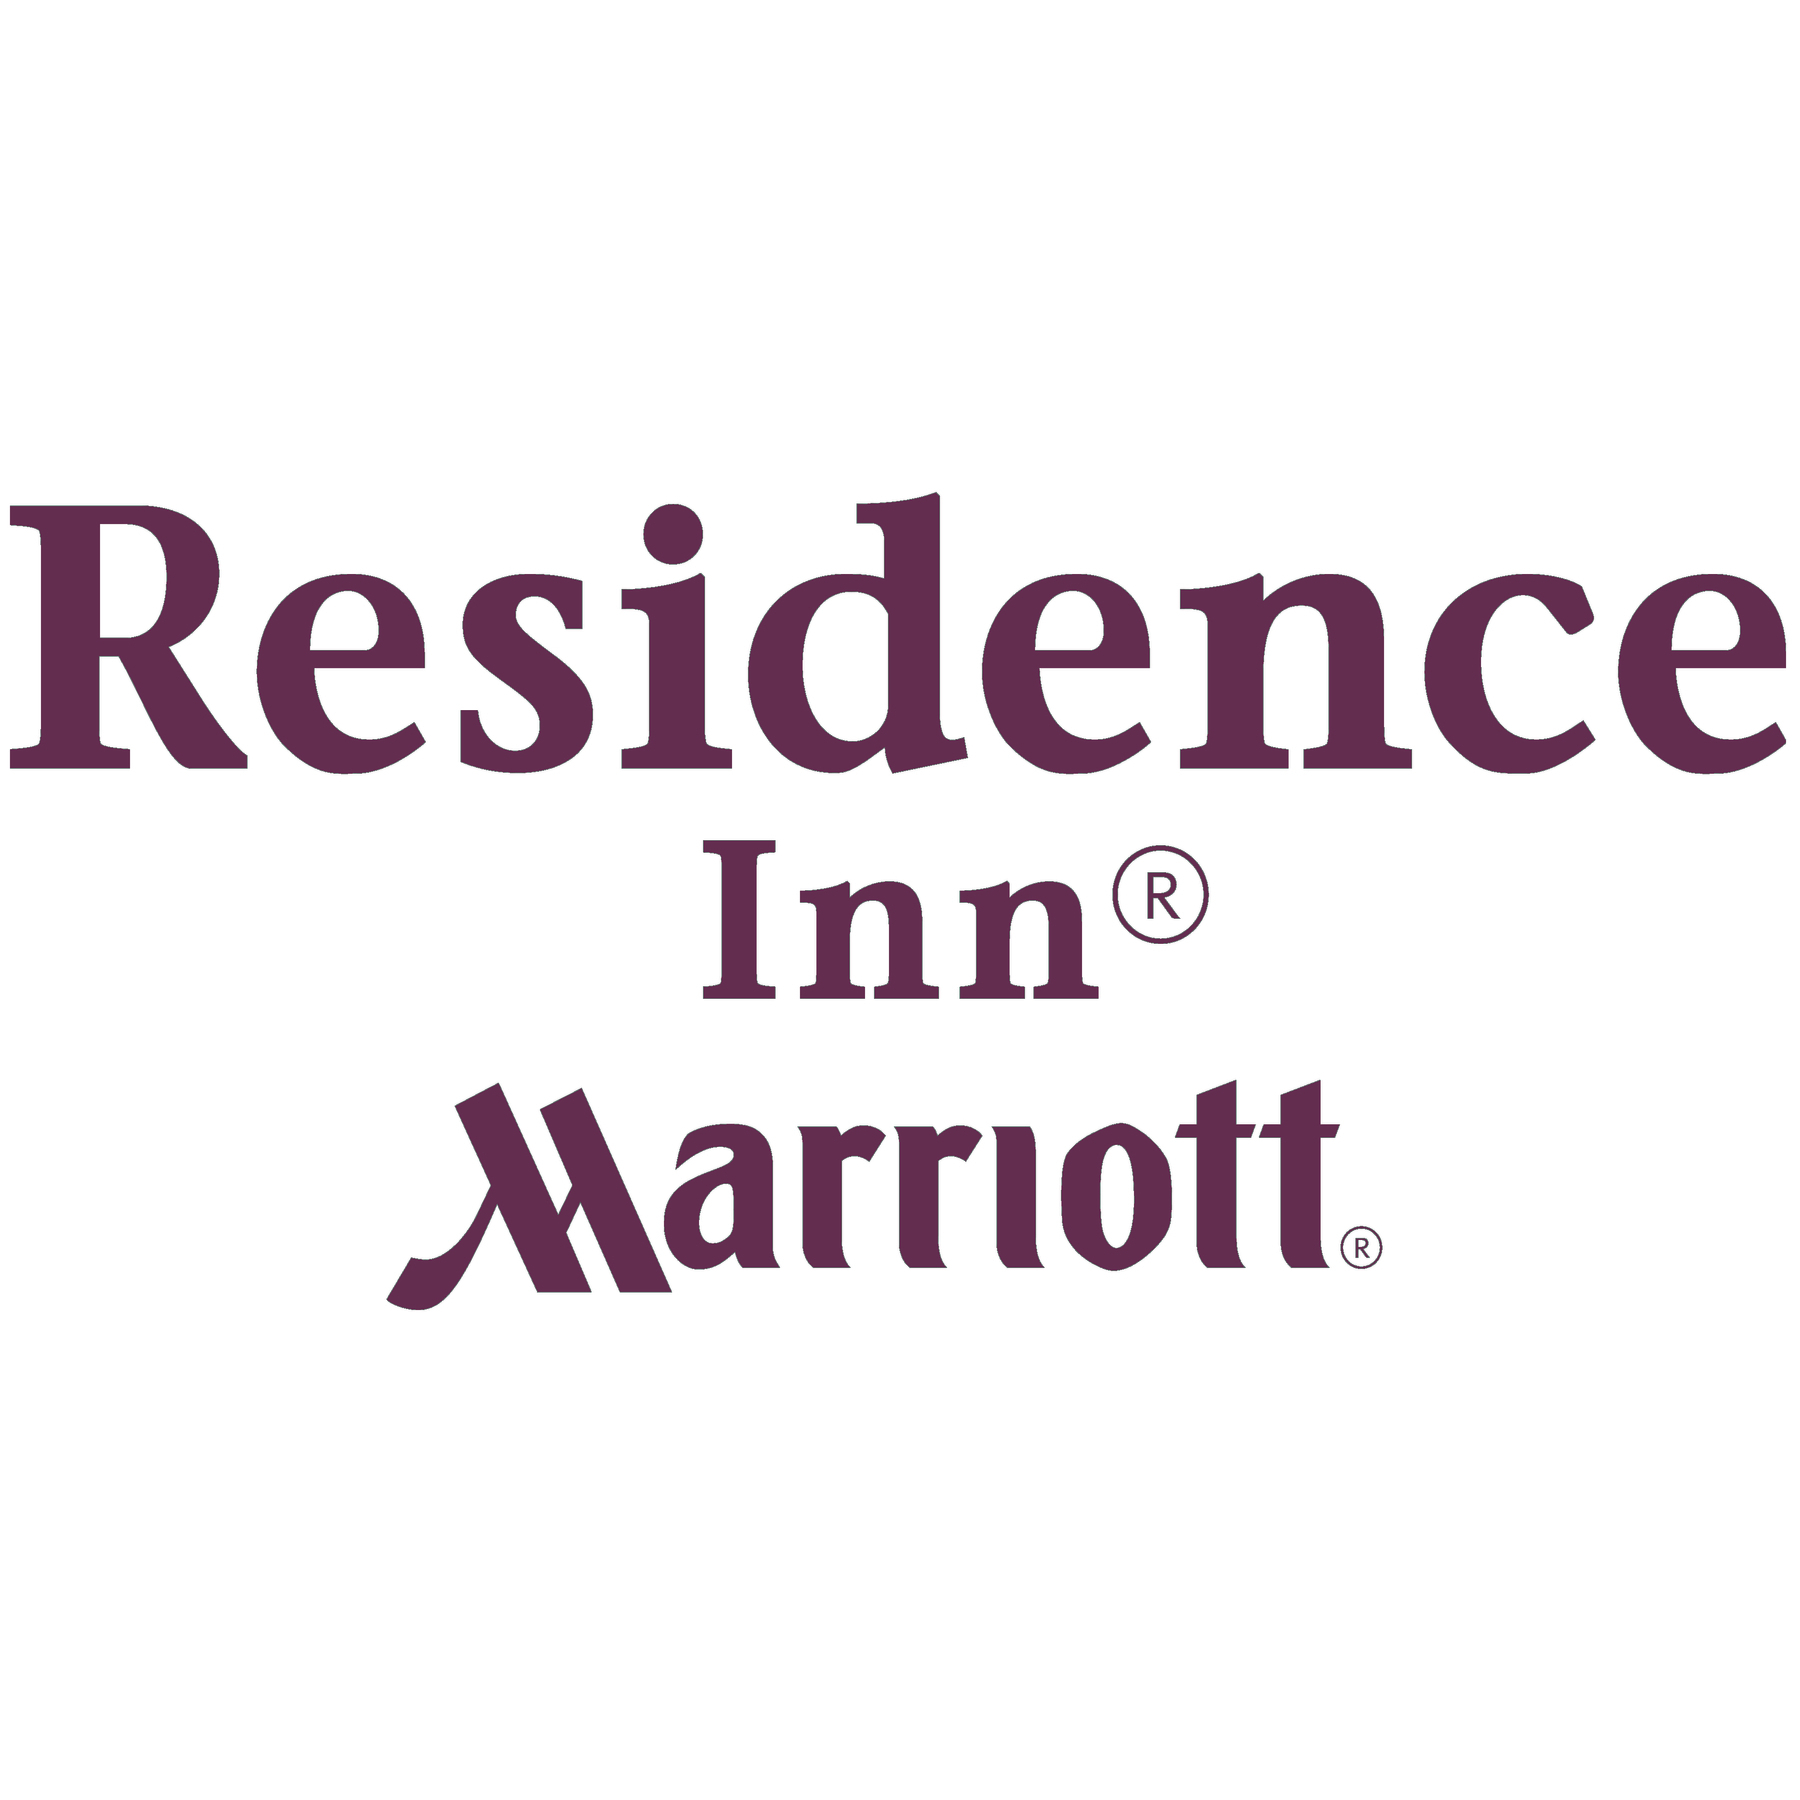 Residence Inn by Marriott Chicago Lombard - Lombard, IL - Hotels & Motels